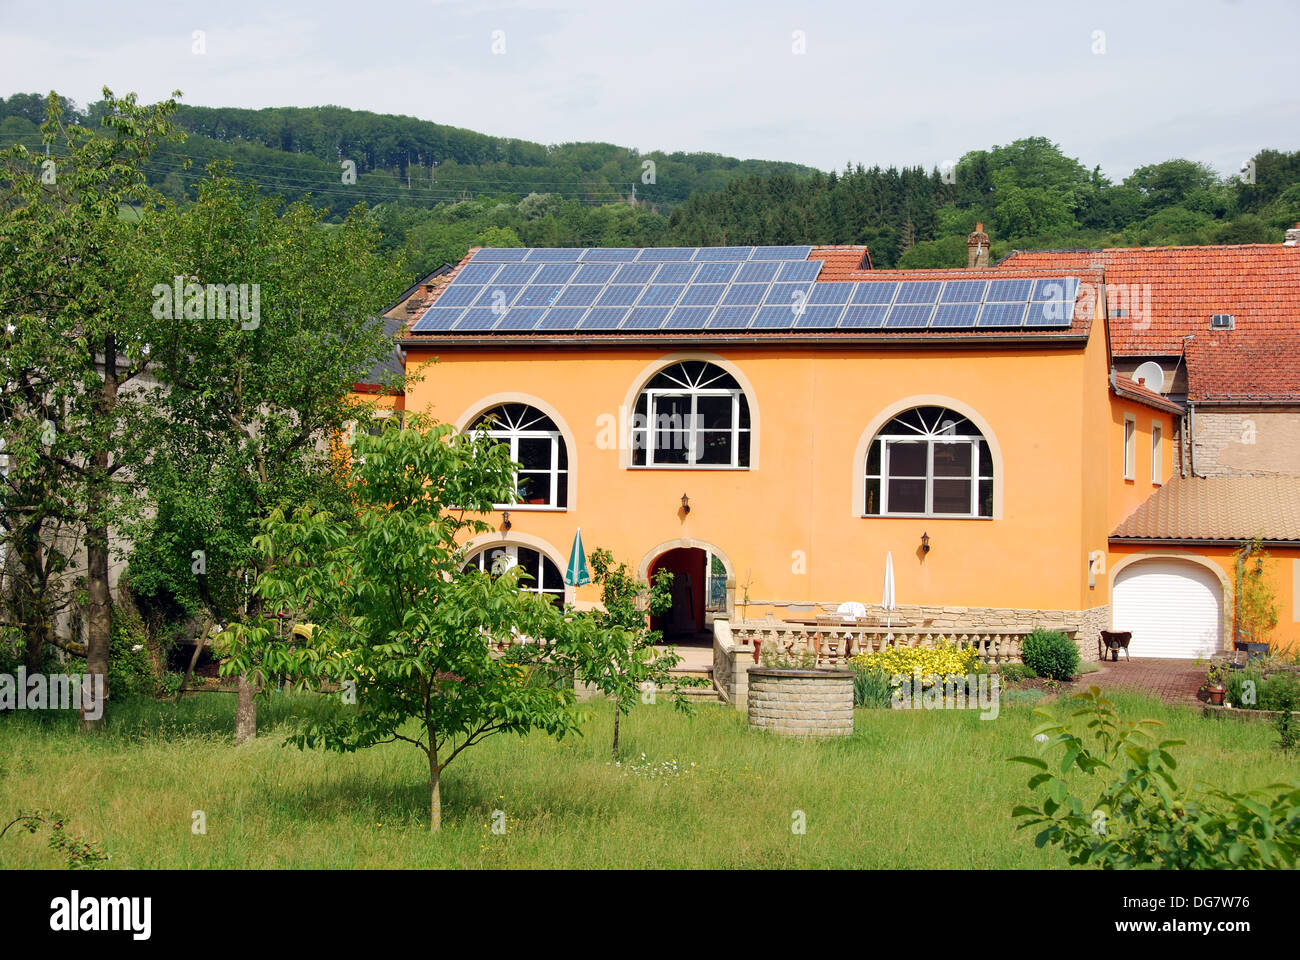 House with roof of solar panels, Luxembourg, Europe - Stock Image